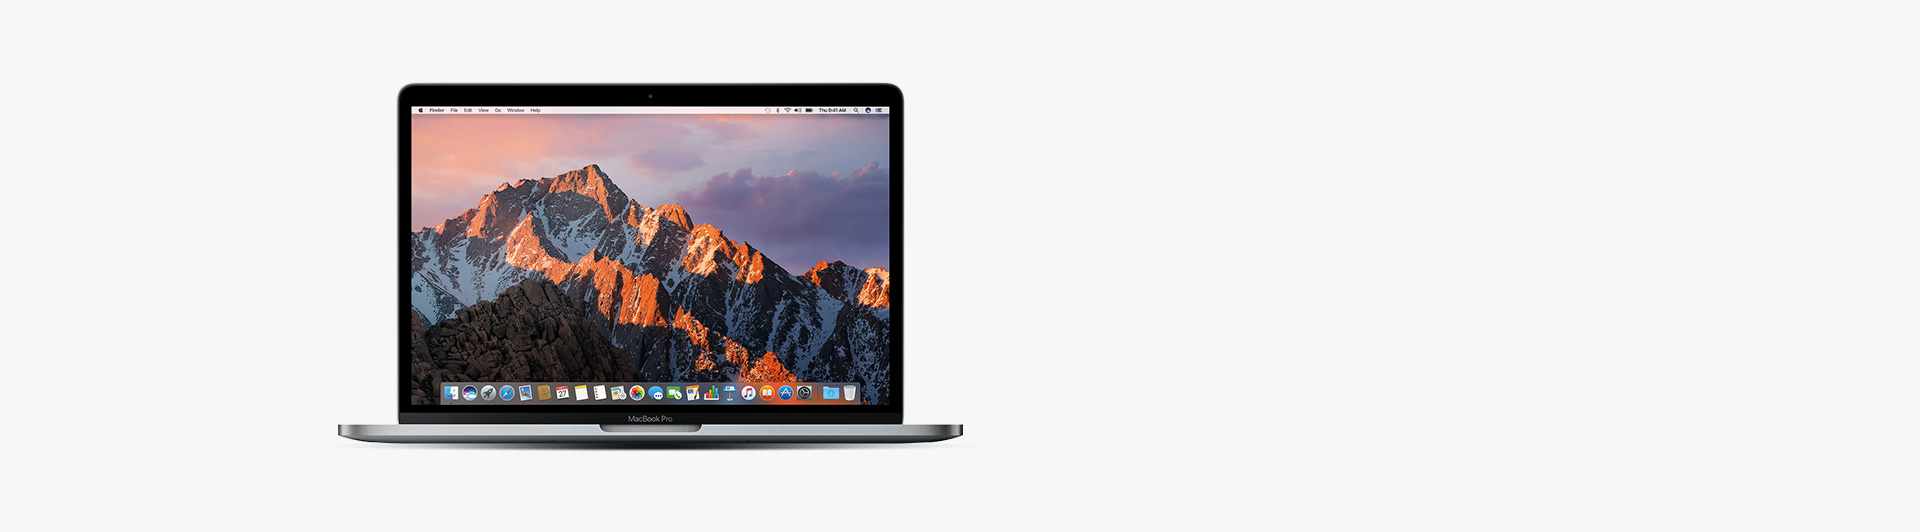 MACBOOK PRO 13.3 INCH 256GB 2017 (MPXT2SA/A)